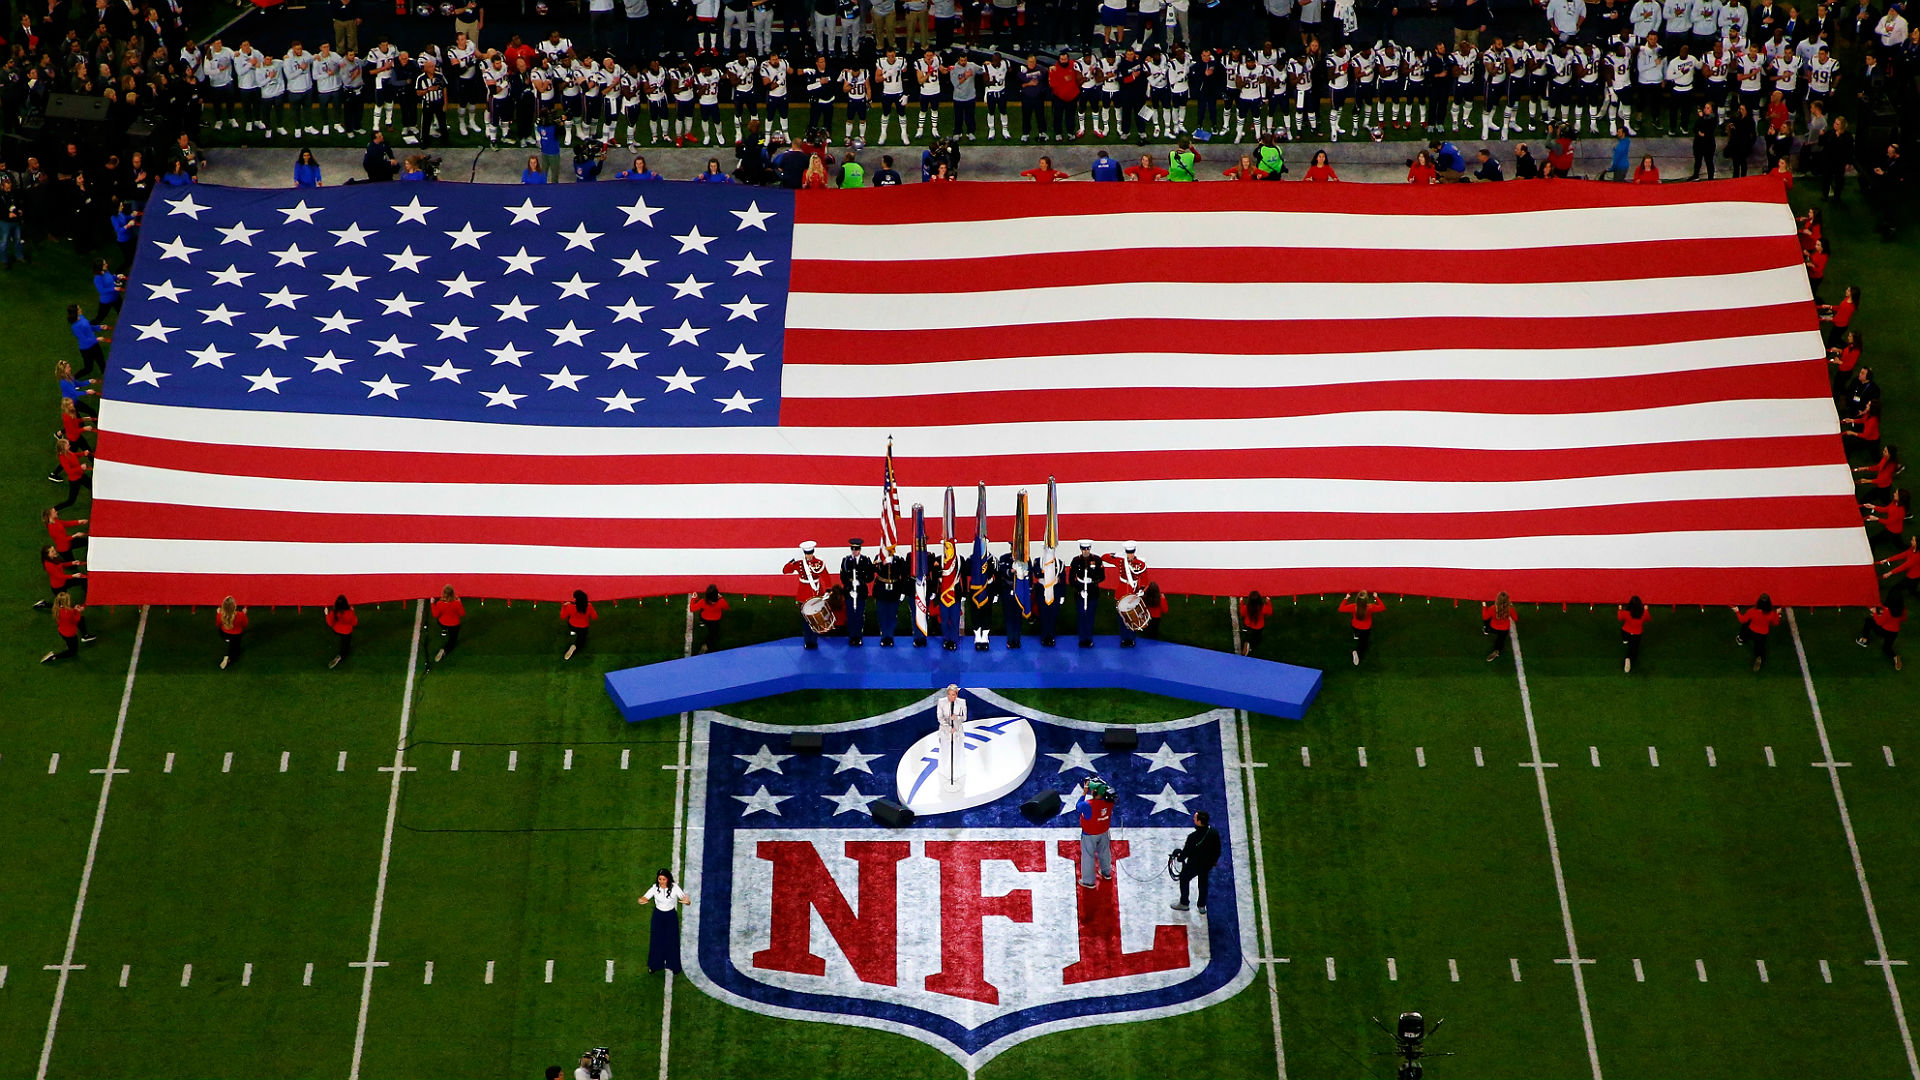 NFL national anthem policy: Players on field must stand, show 'respect'